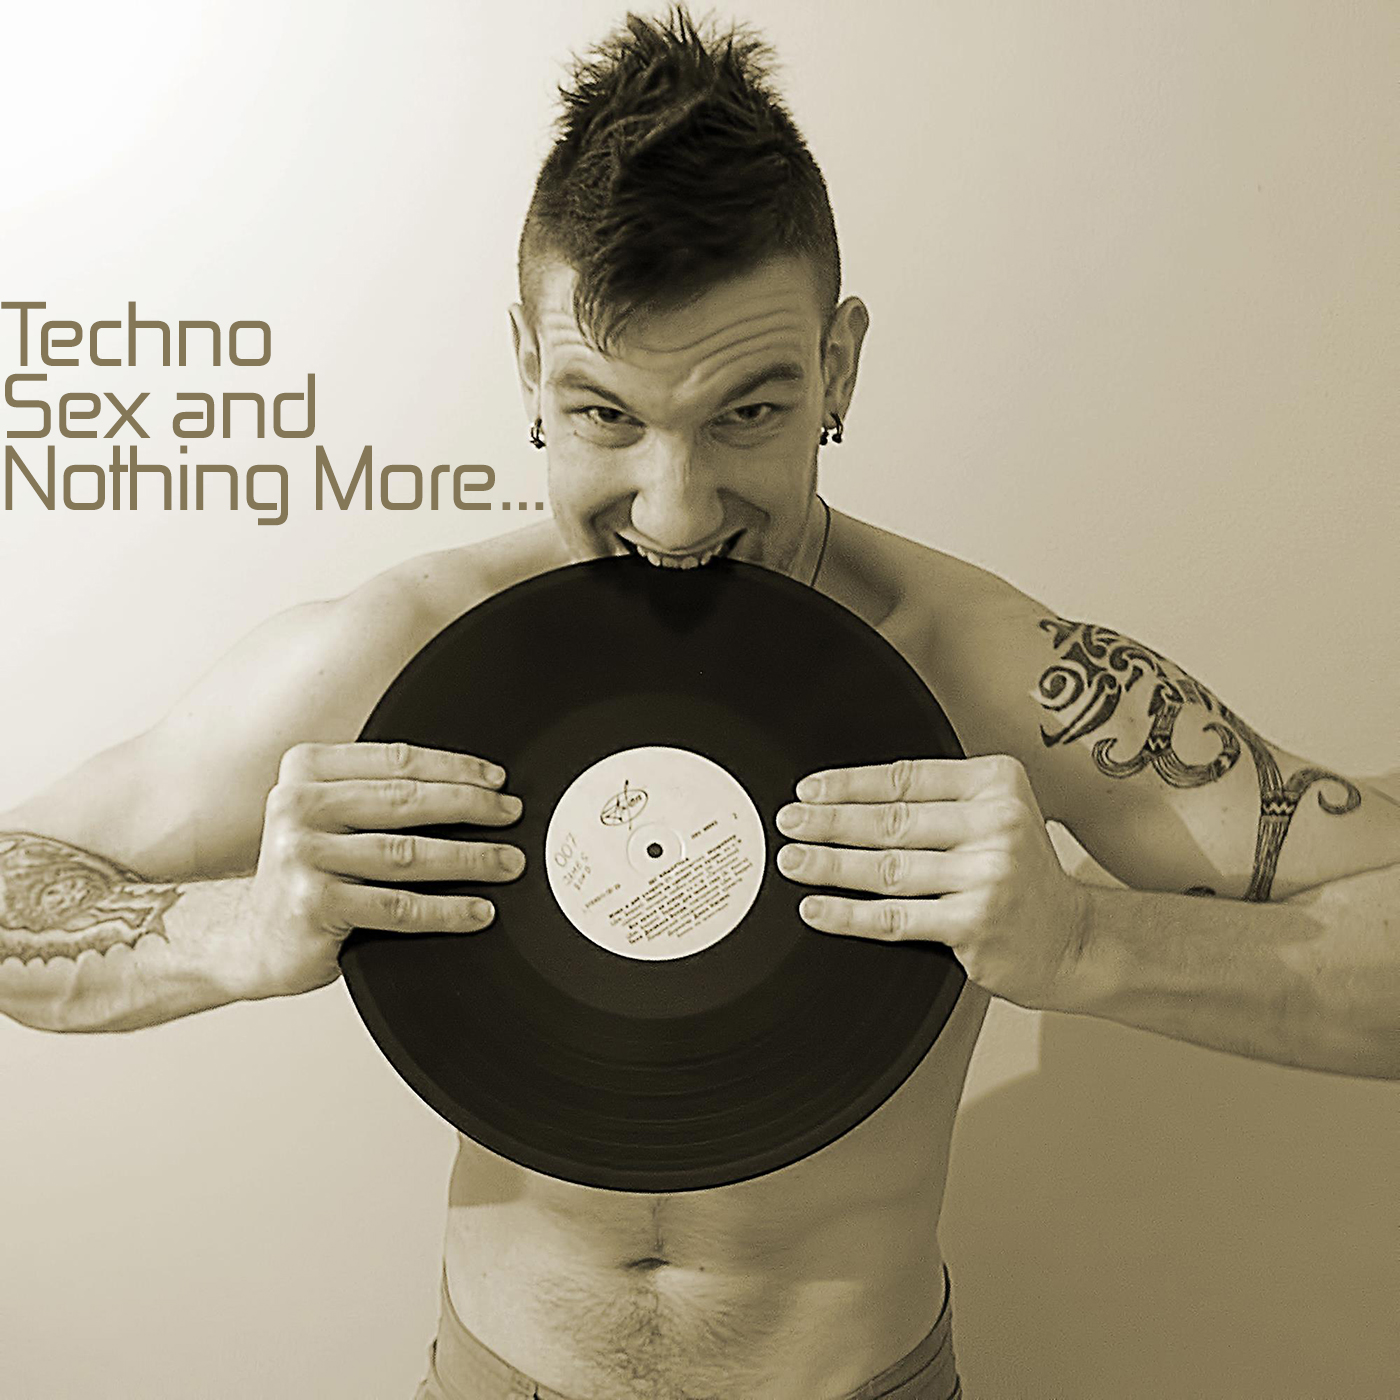 Techno, Sex and Nothing More...